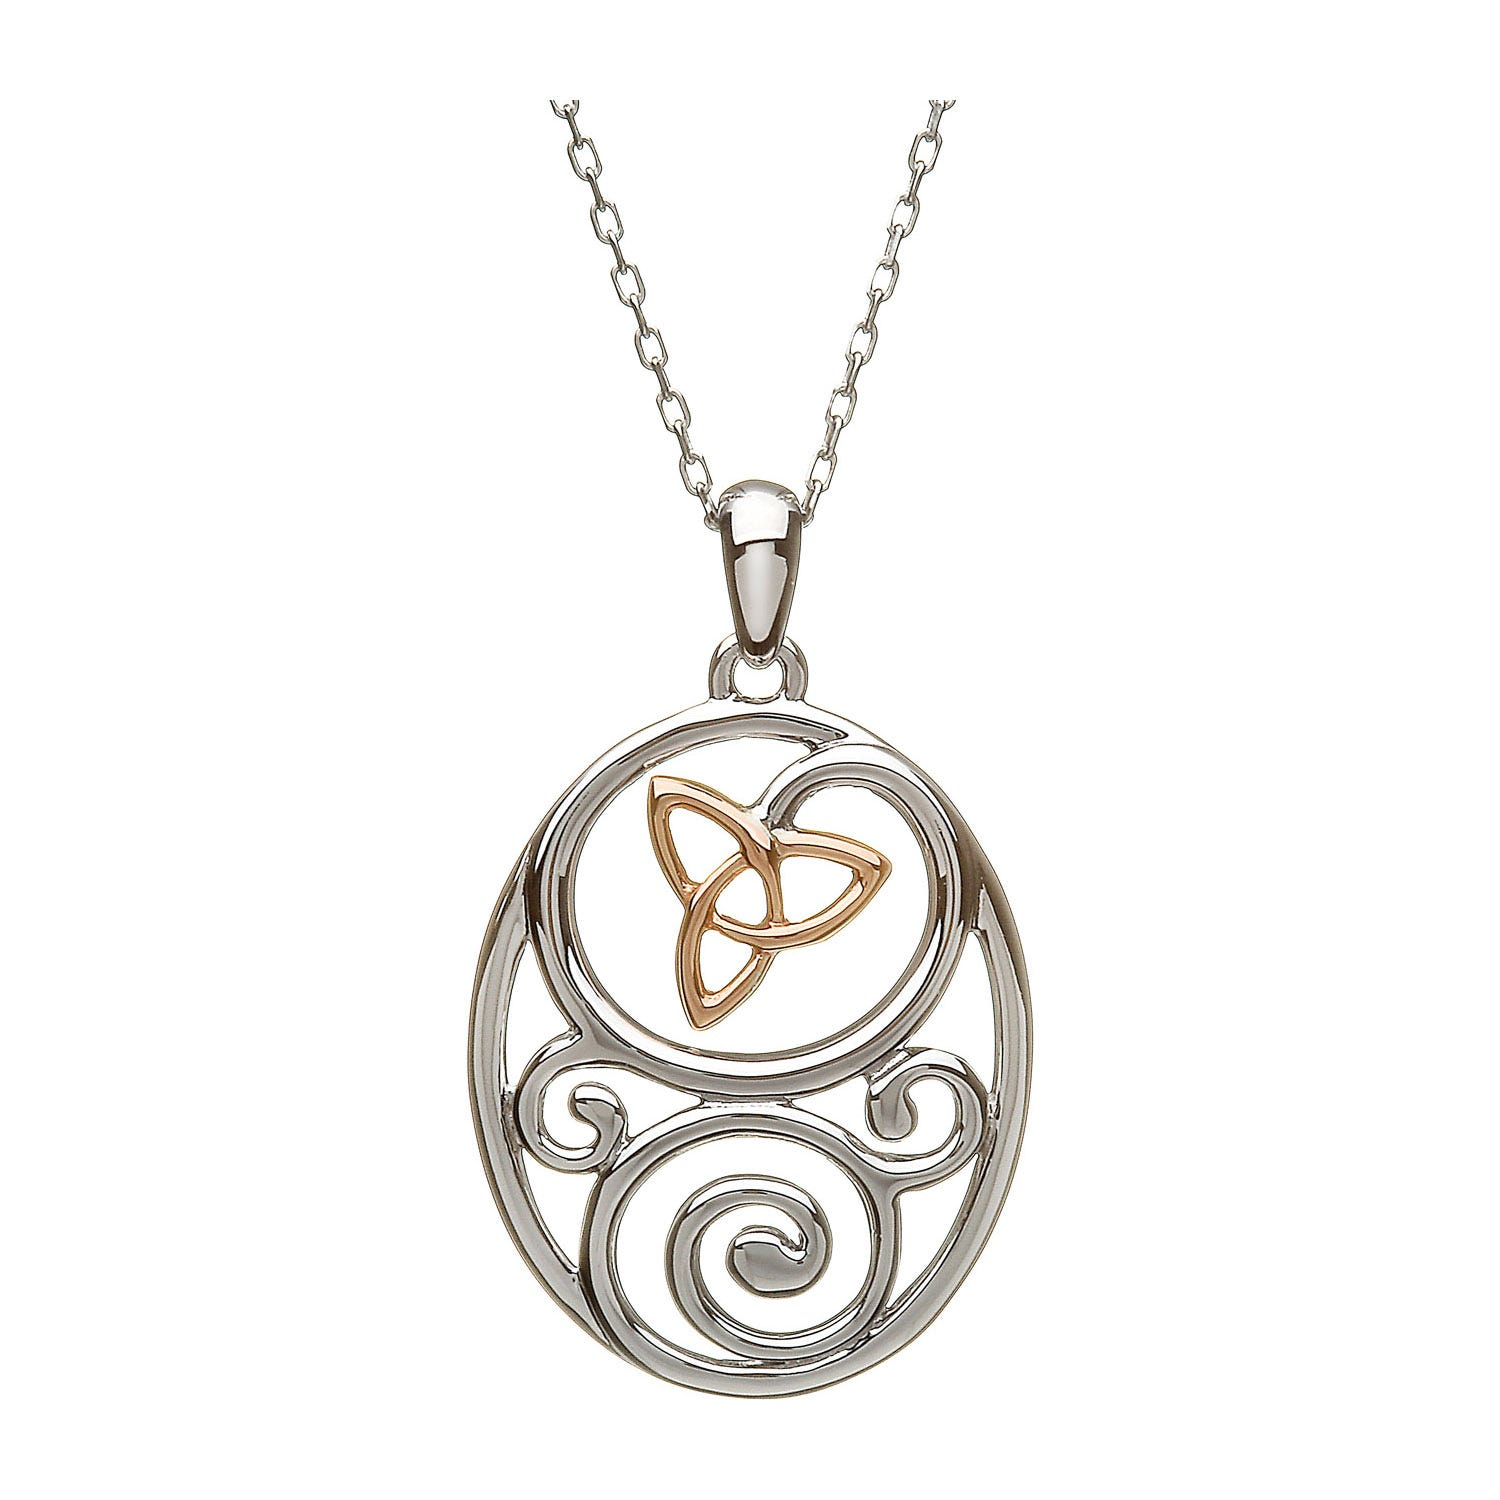 House of Lor Irish Gold Trinity Knot Silver Celtic Pendant